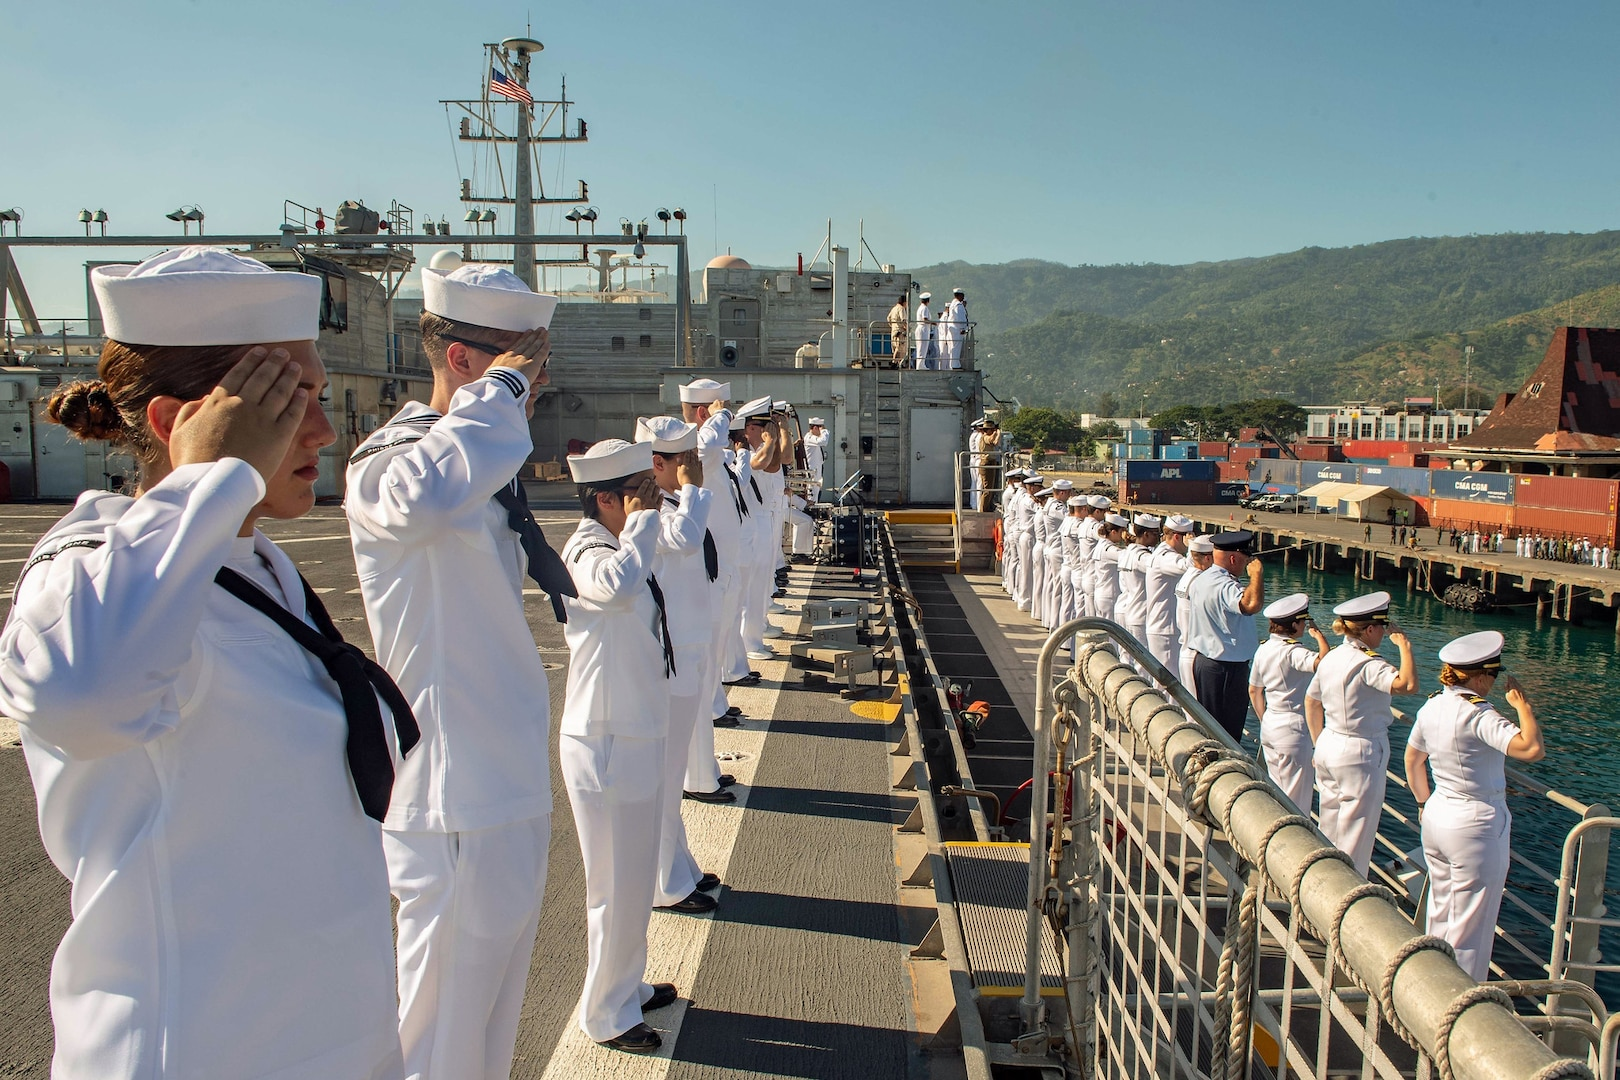 USNS Fall River Arrives in Dili for Pacific Partnership